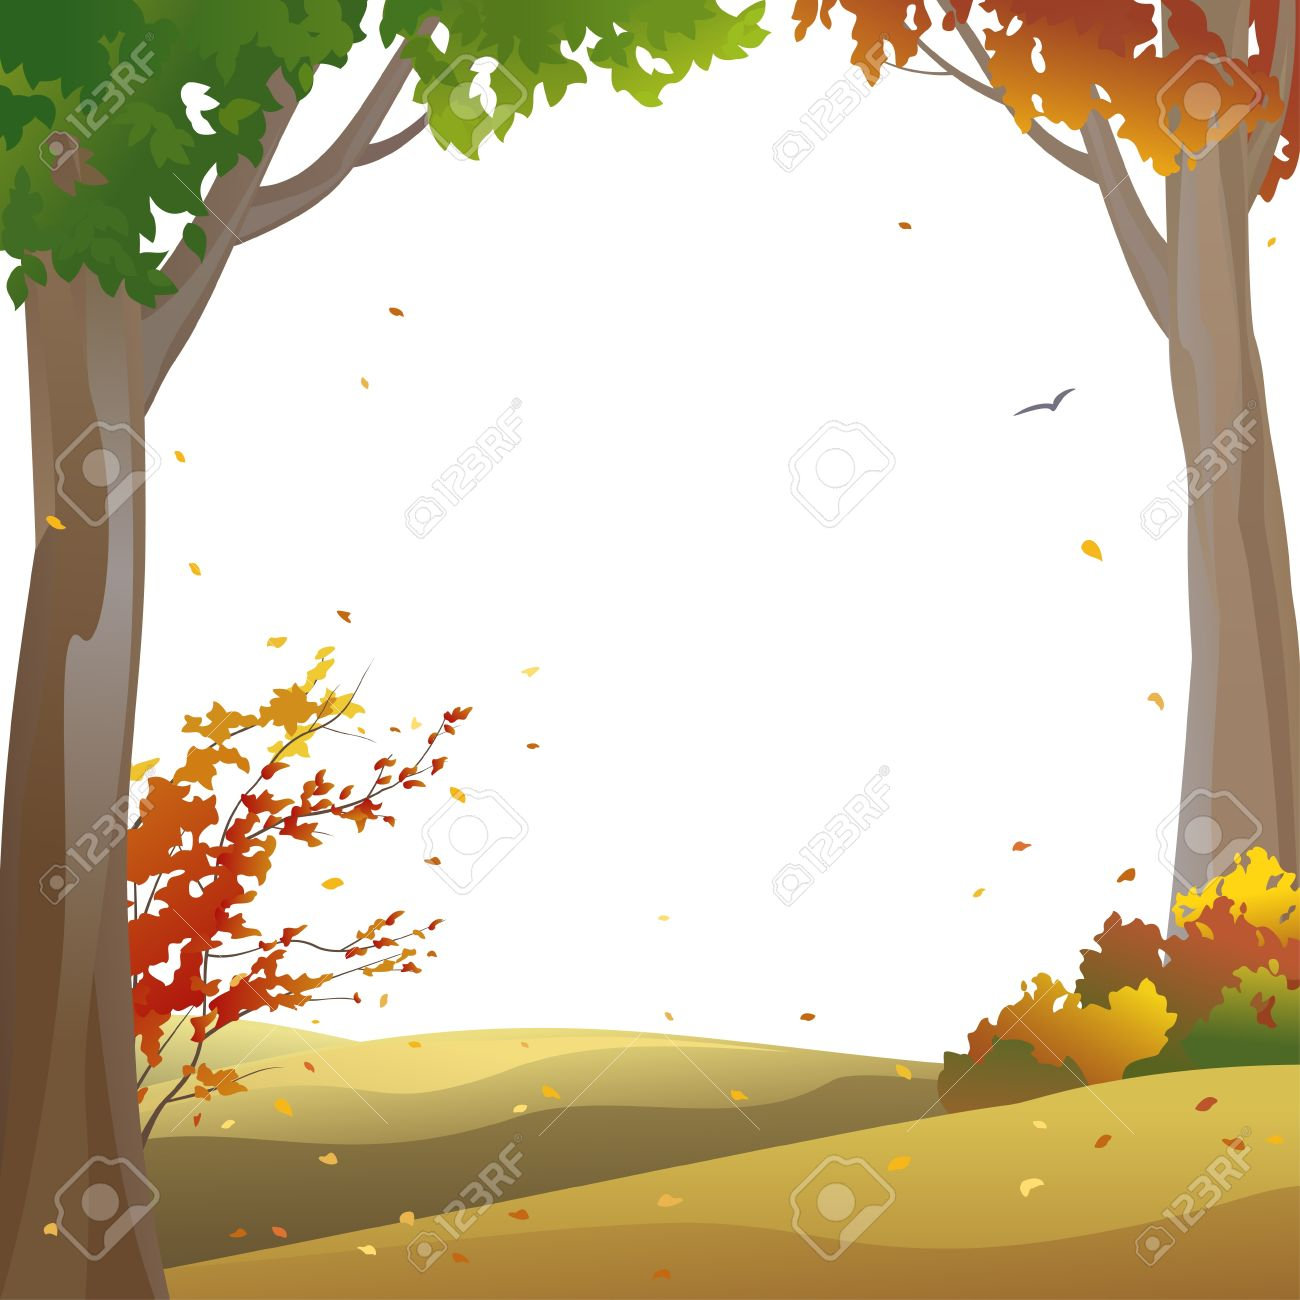 vector background with autumn trees and falling leaves royalty free rh 123rf com fall leaf background clipart Thanksgiving Background Clip Art